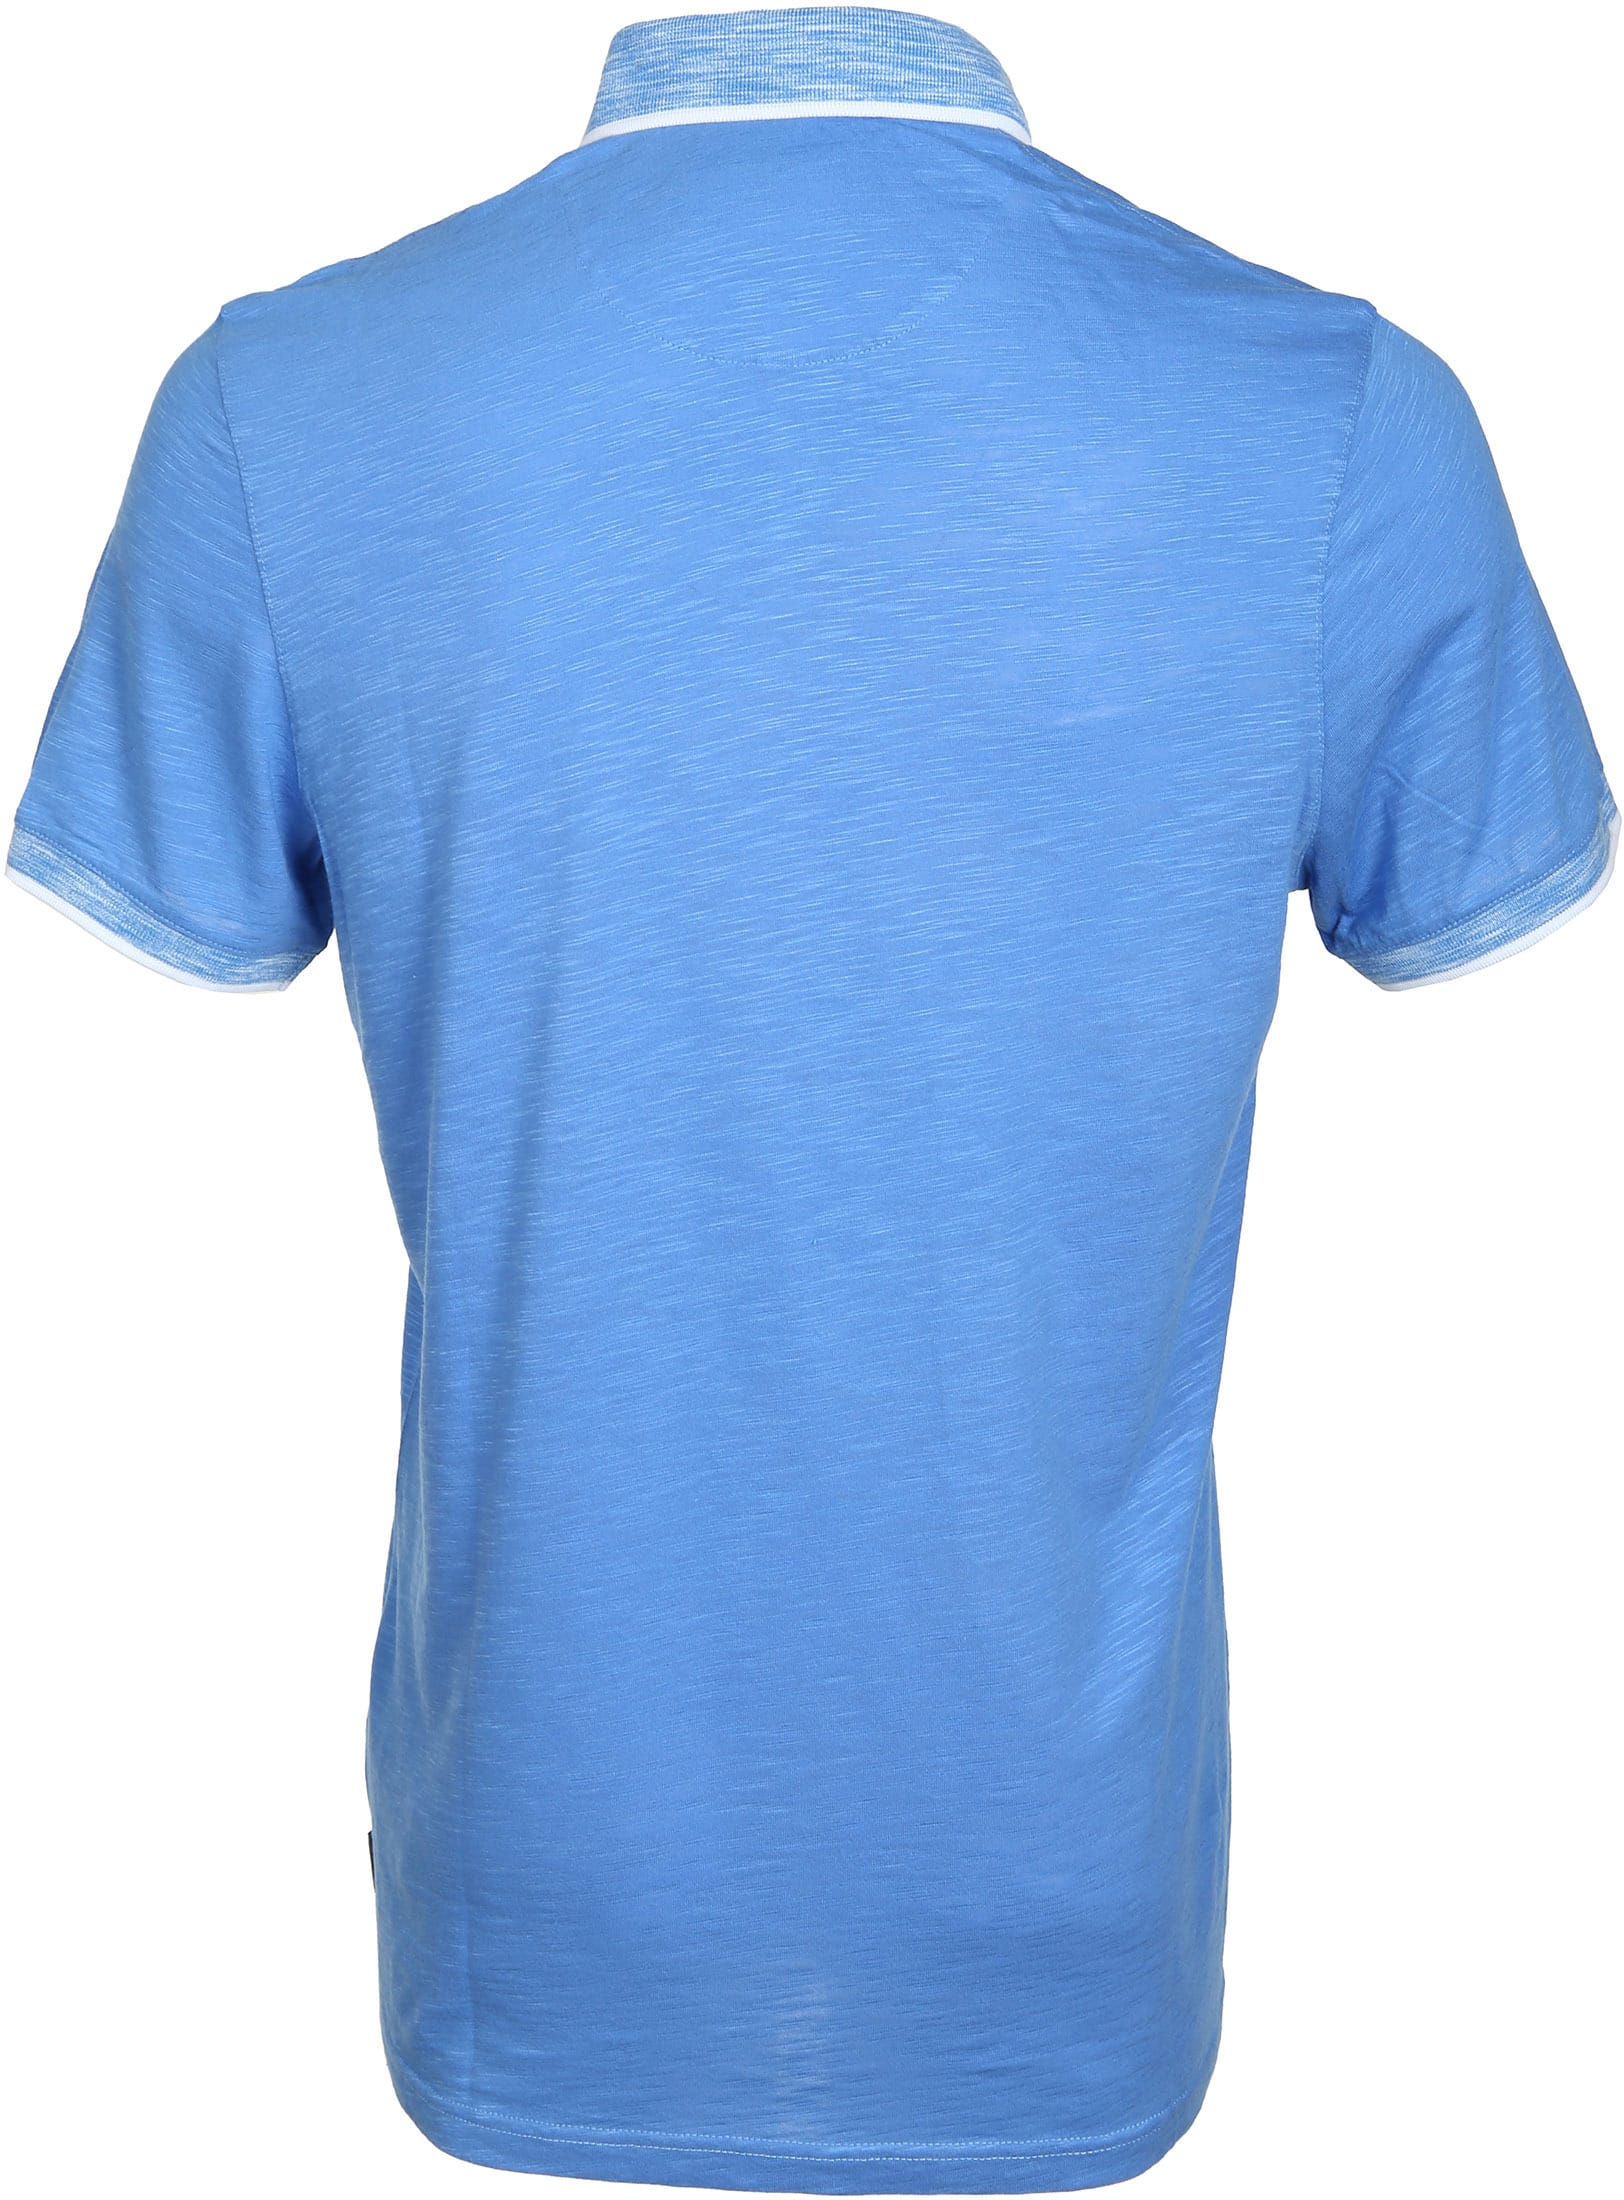 Ted Baker Poloshirt Space Blauw foto 2